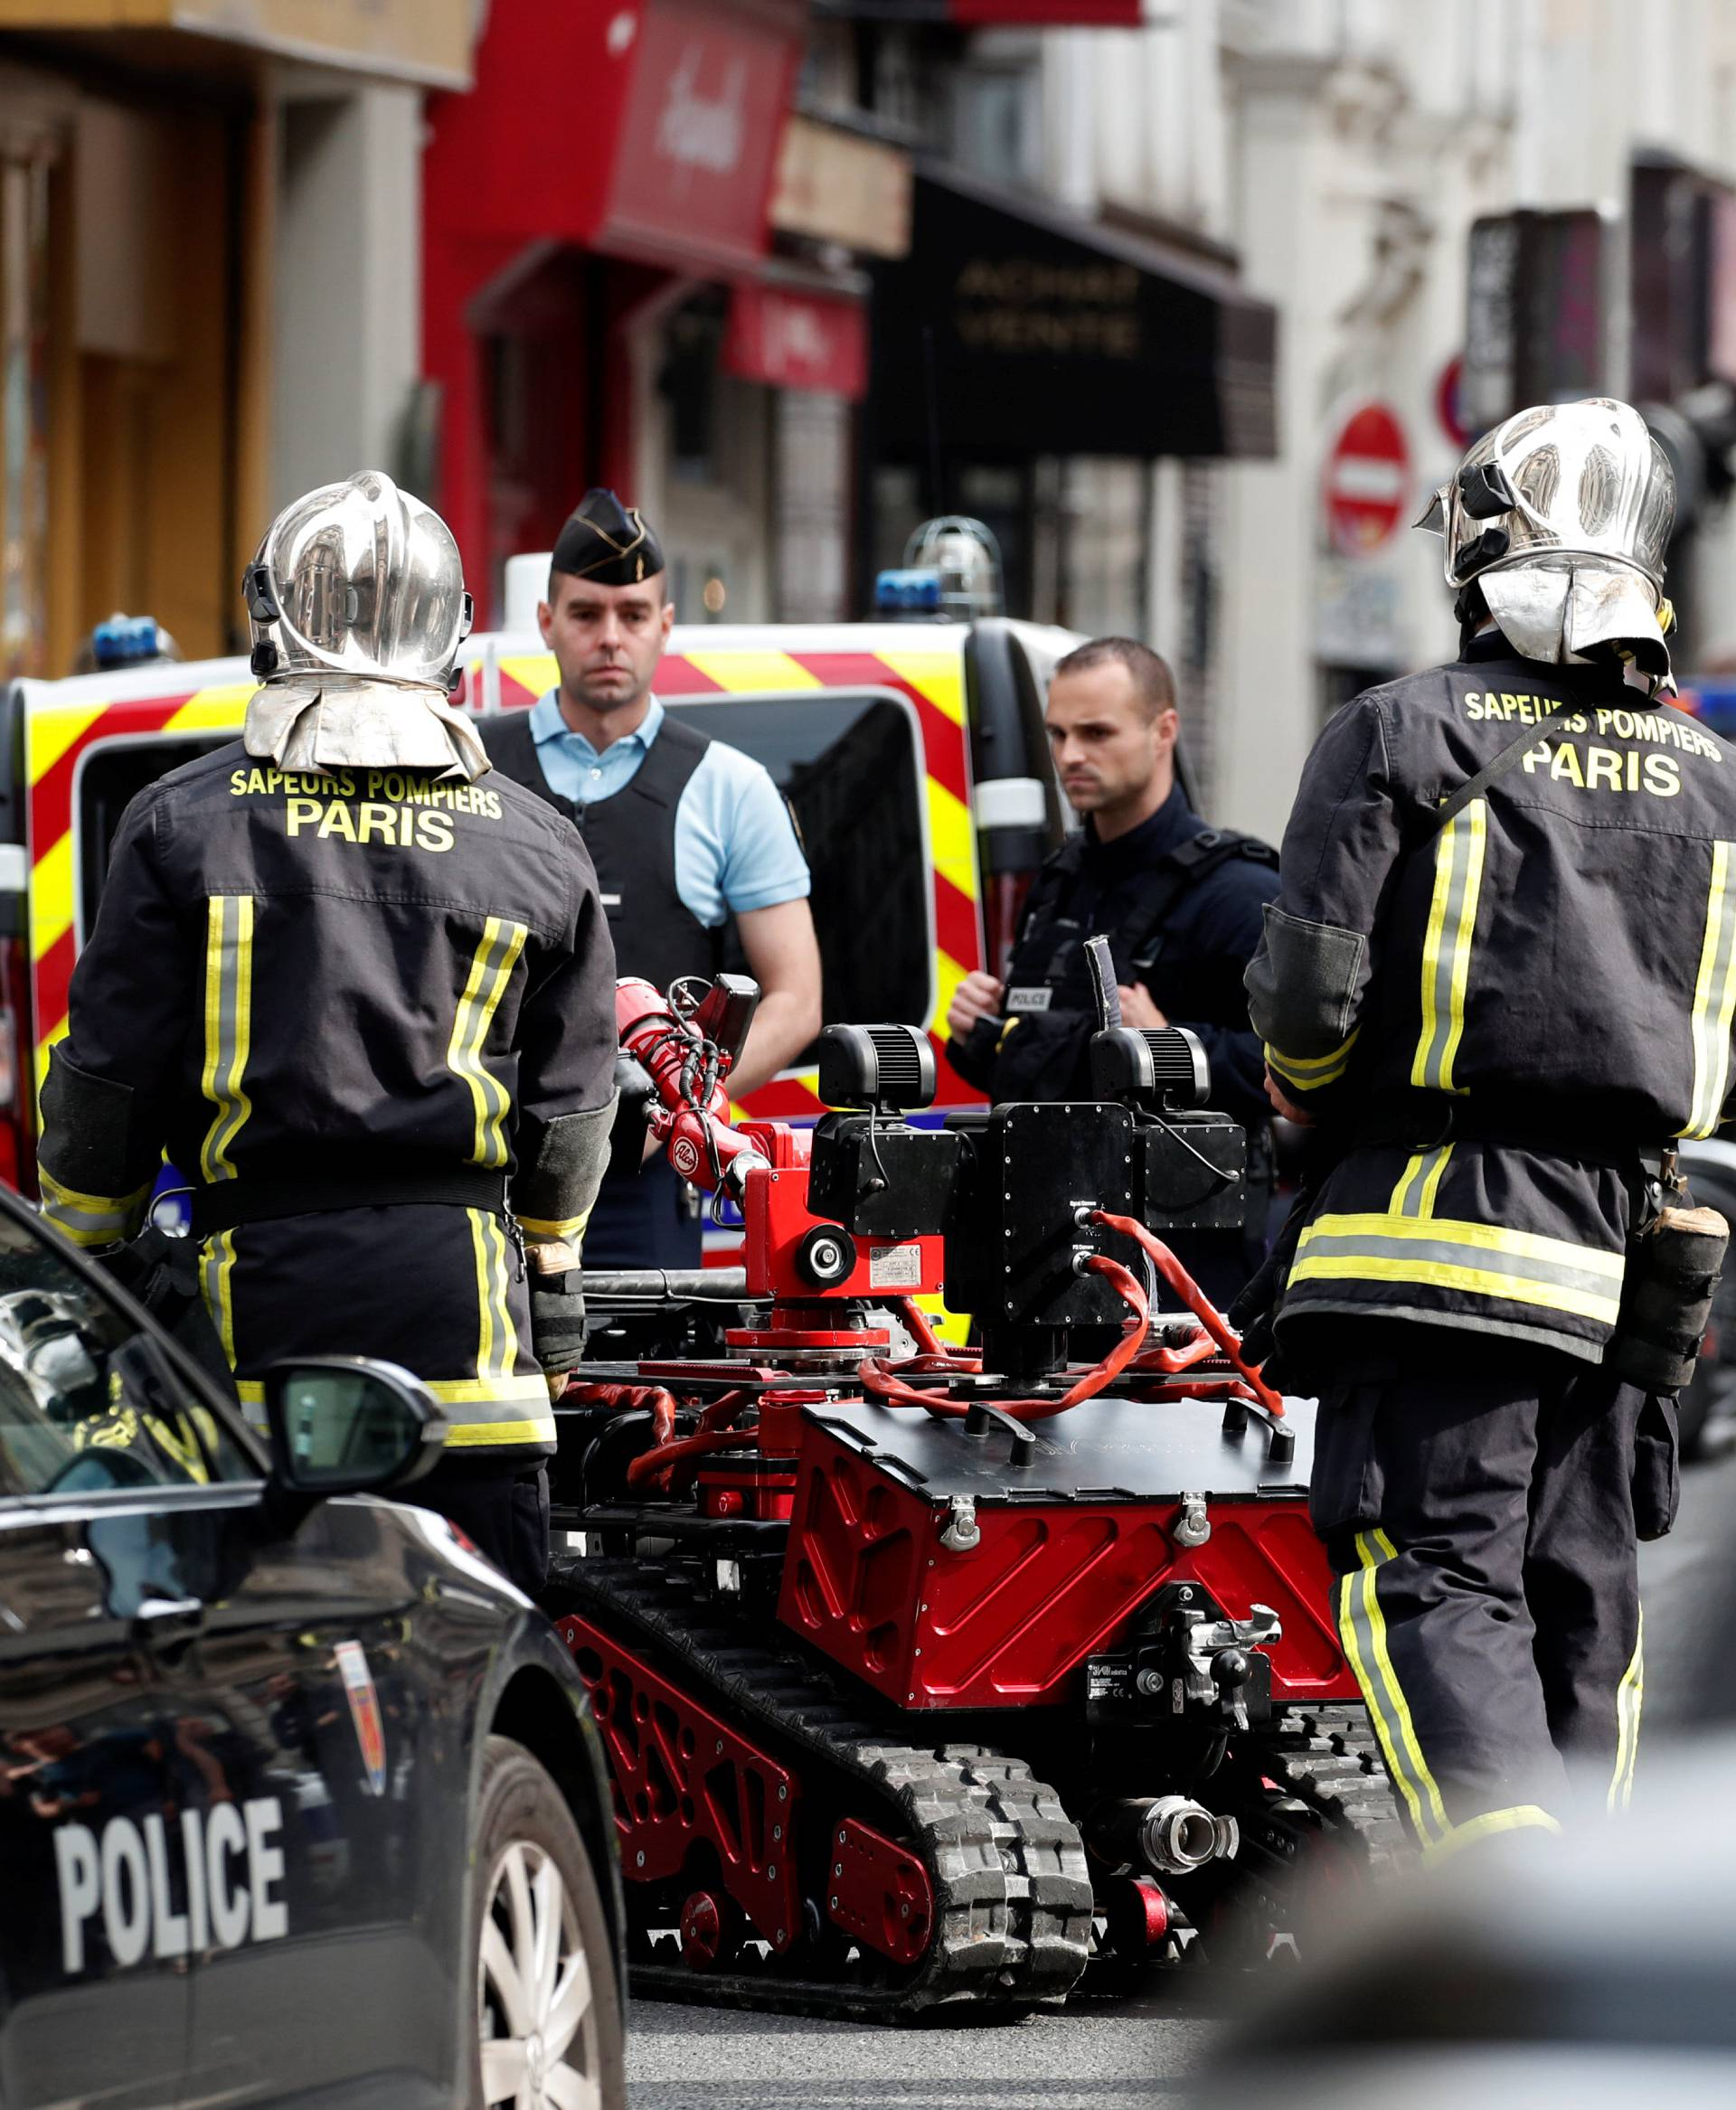 French police and special police forces (BRI) and firemen secure the street as a man has taken people hostage at a business in Paris